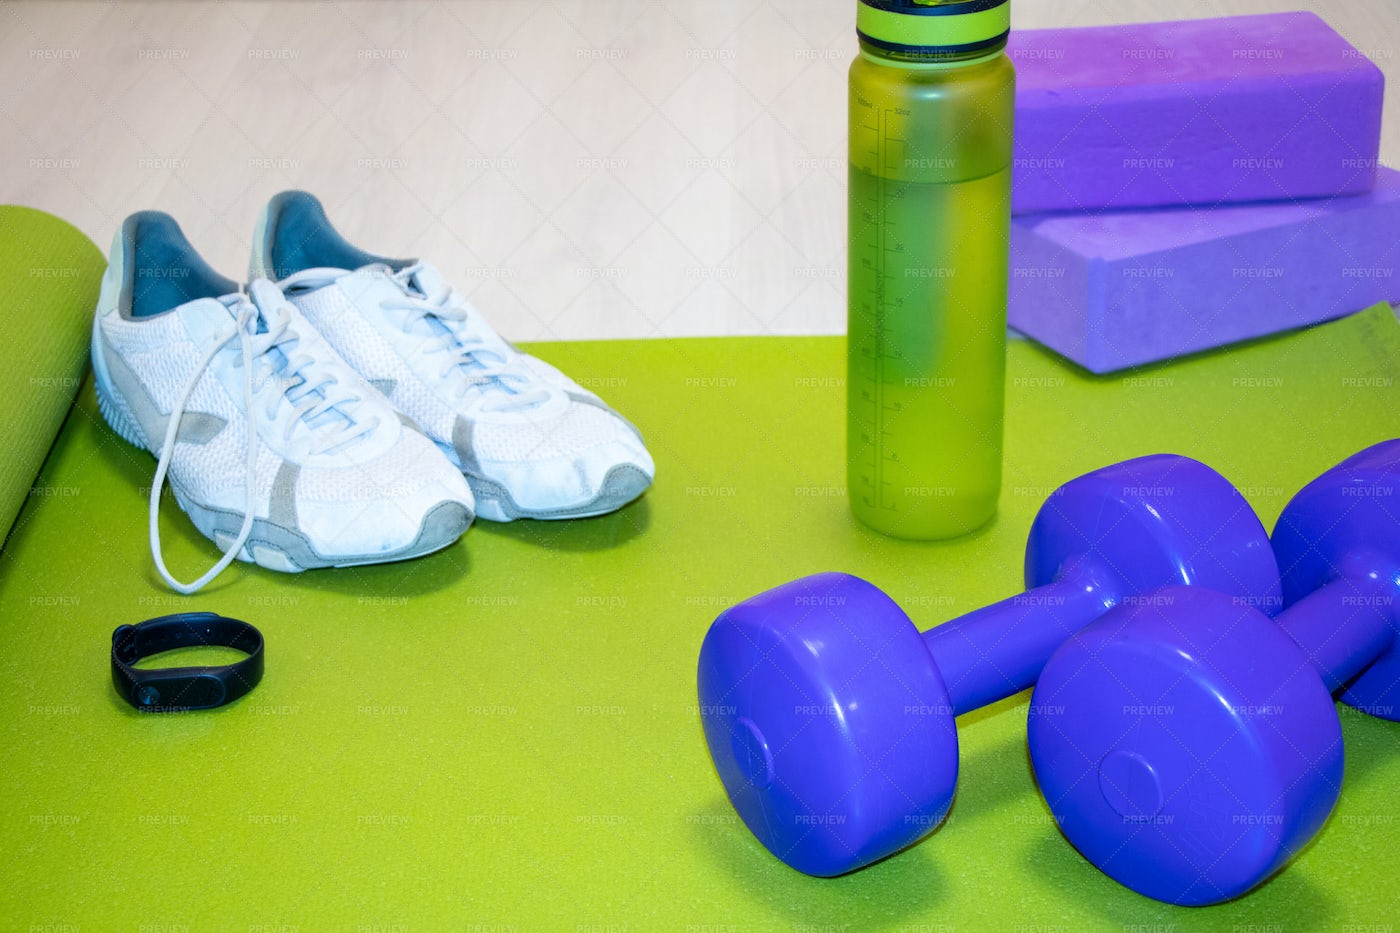 Fitness Items And Sneakers: Stock Photos